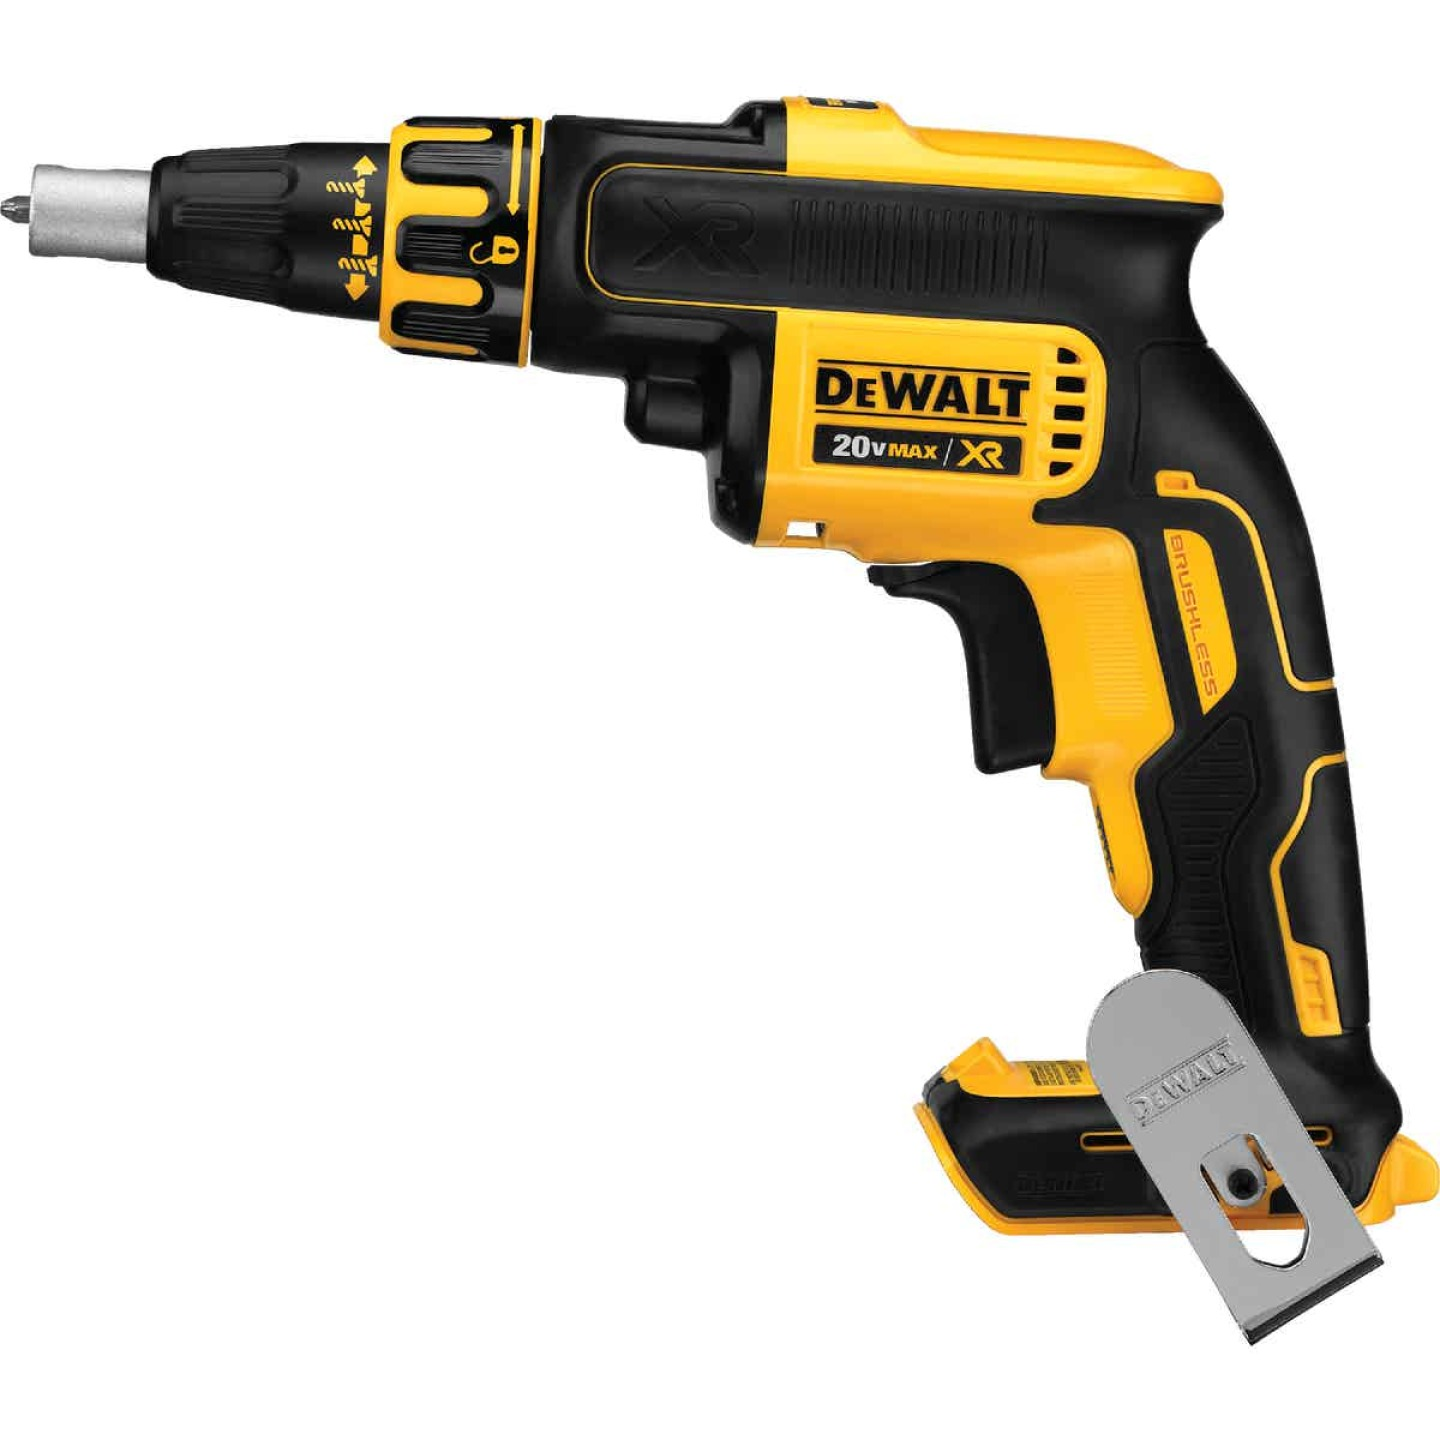 DeWalt 20 Volt MAX XR Lithium-Ion Brushless Drywall Cordless Screwgun (Bare Tool) Image 1